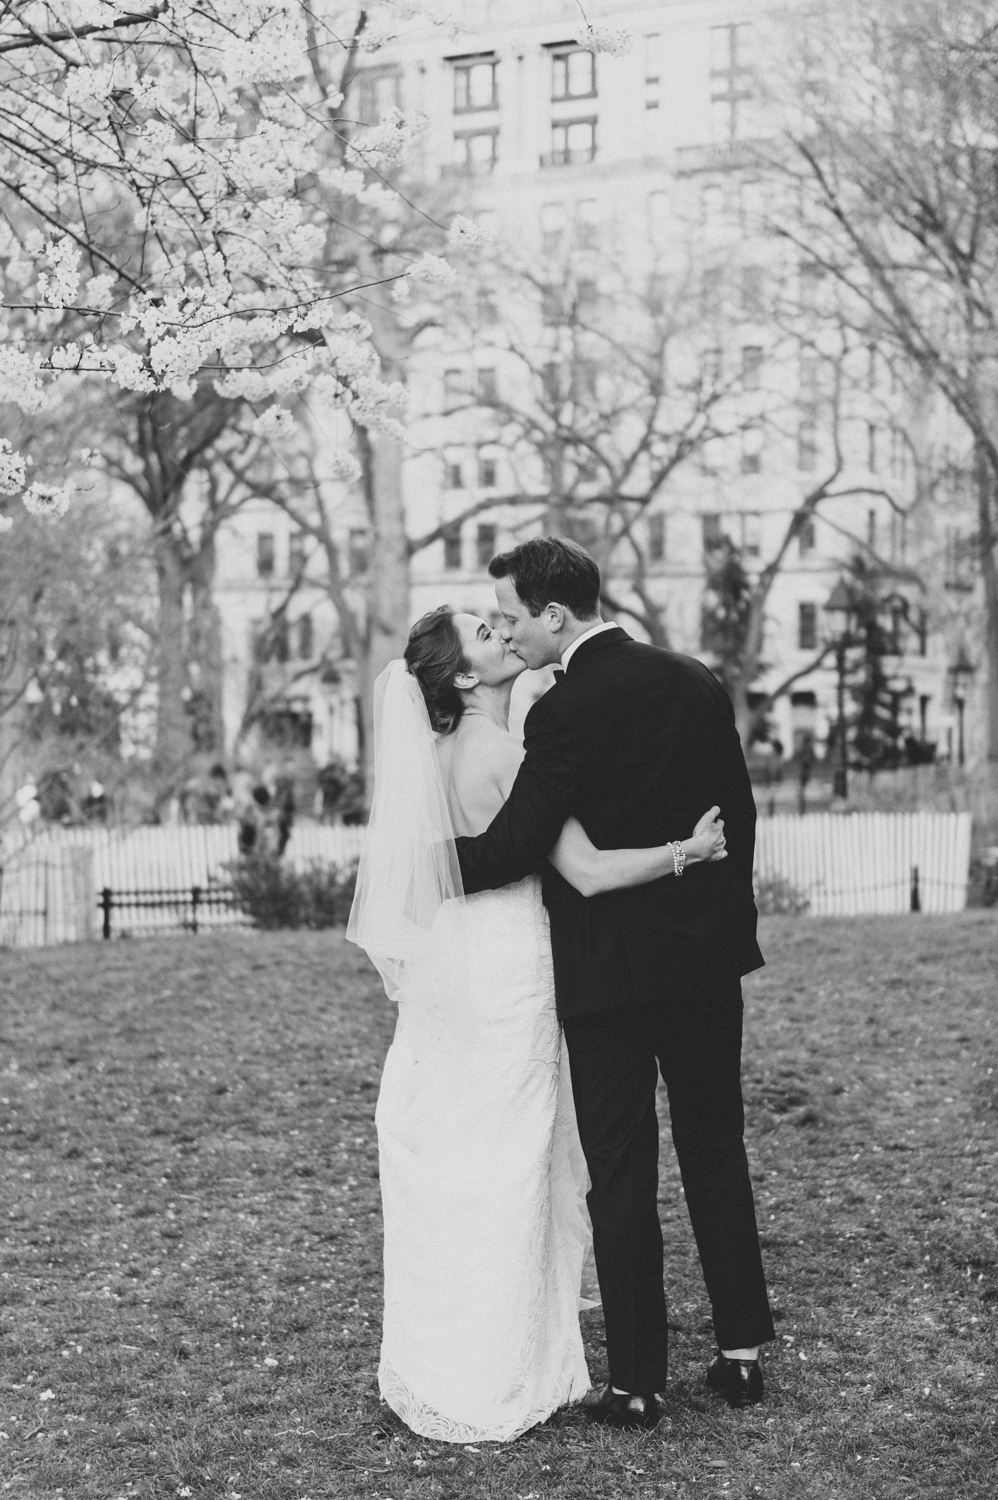 ManhattanPenthouse.WashingtonSquarePark.Wedding.BB.39.jpg